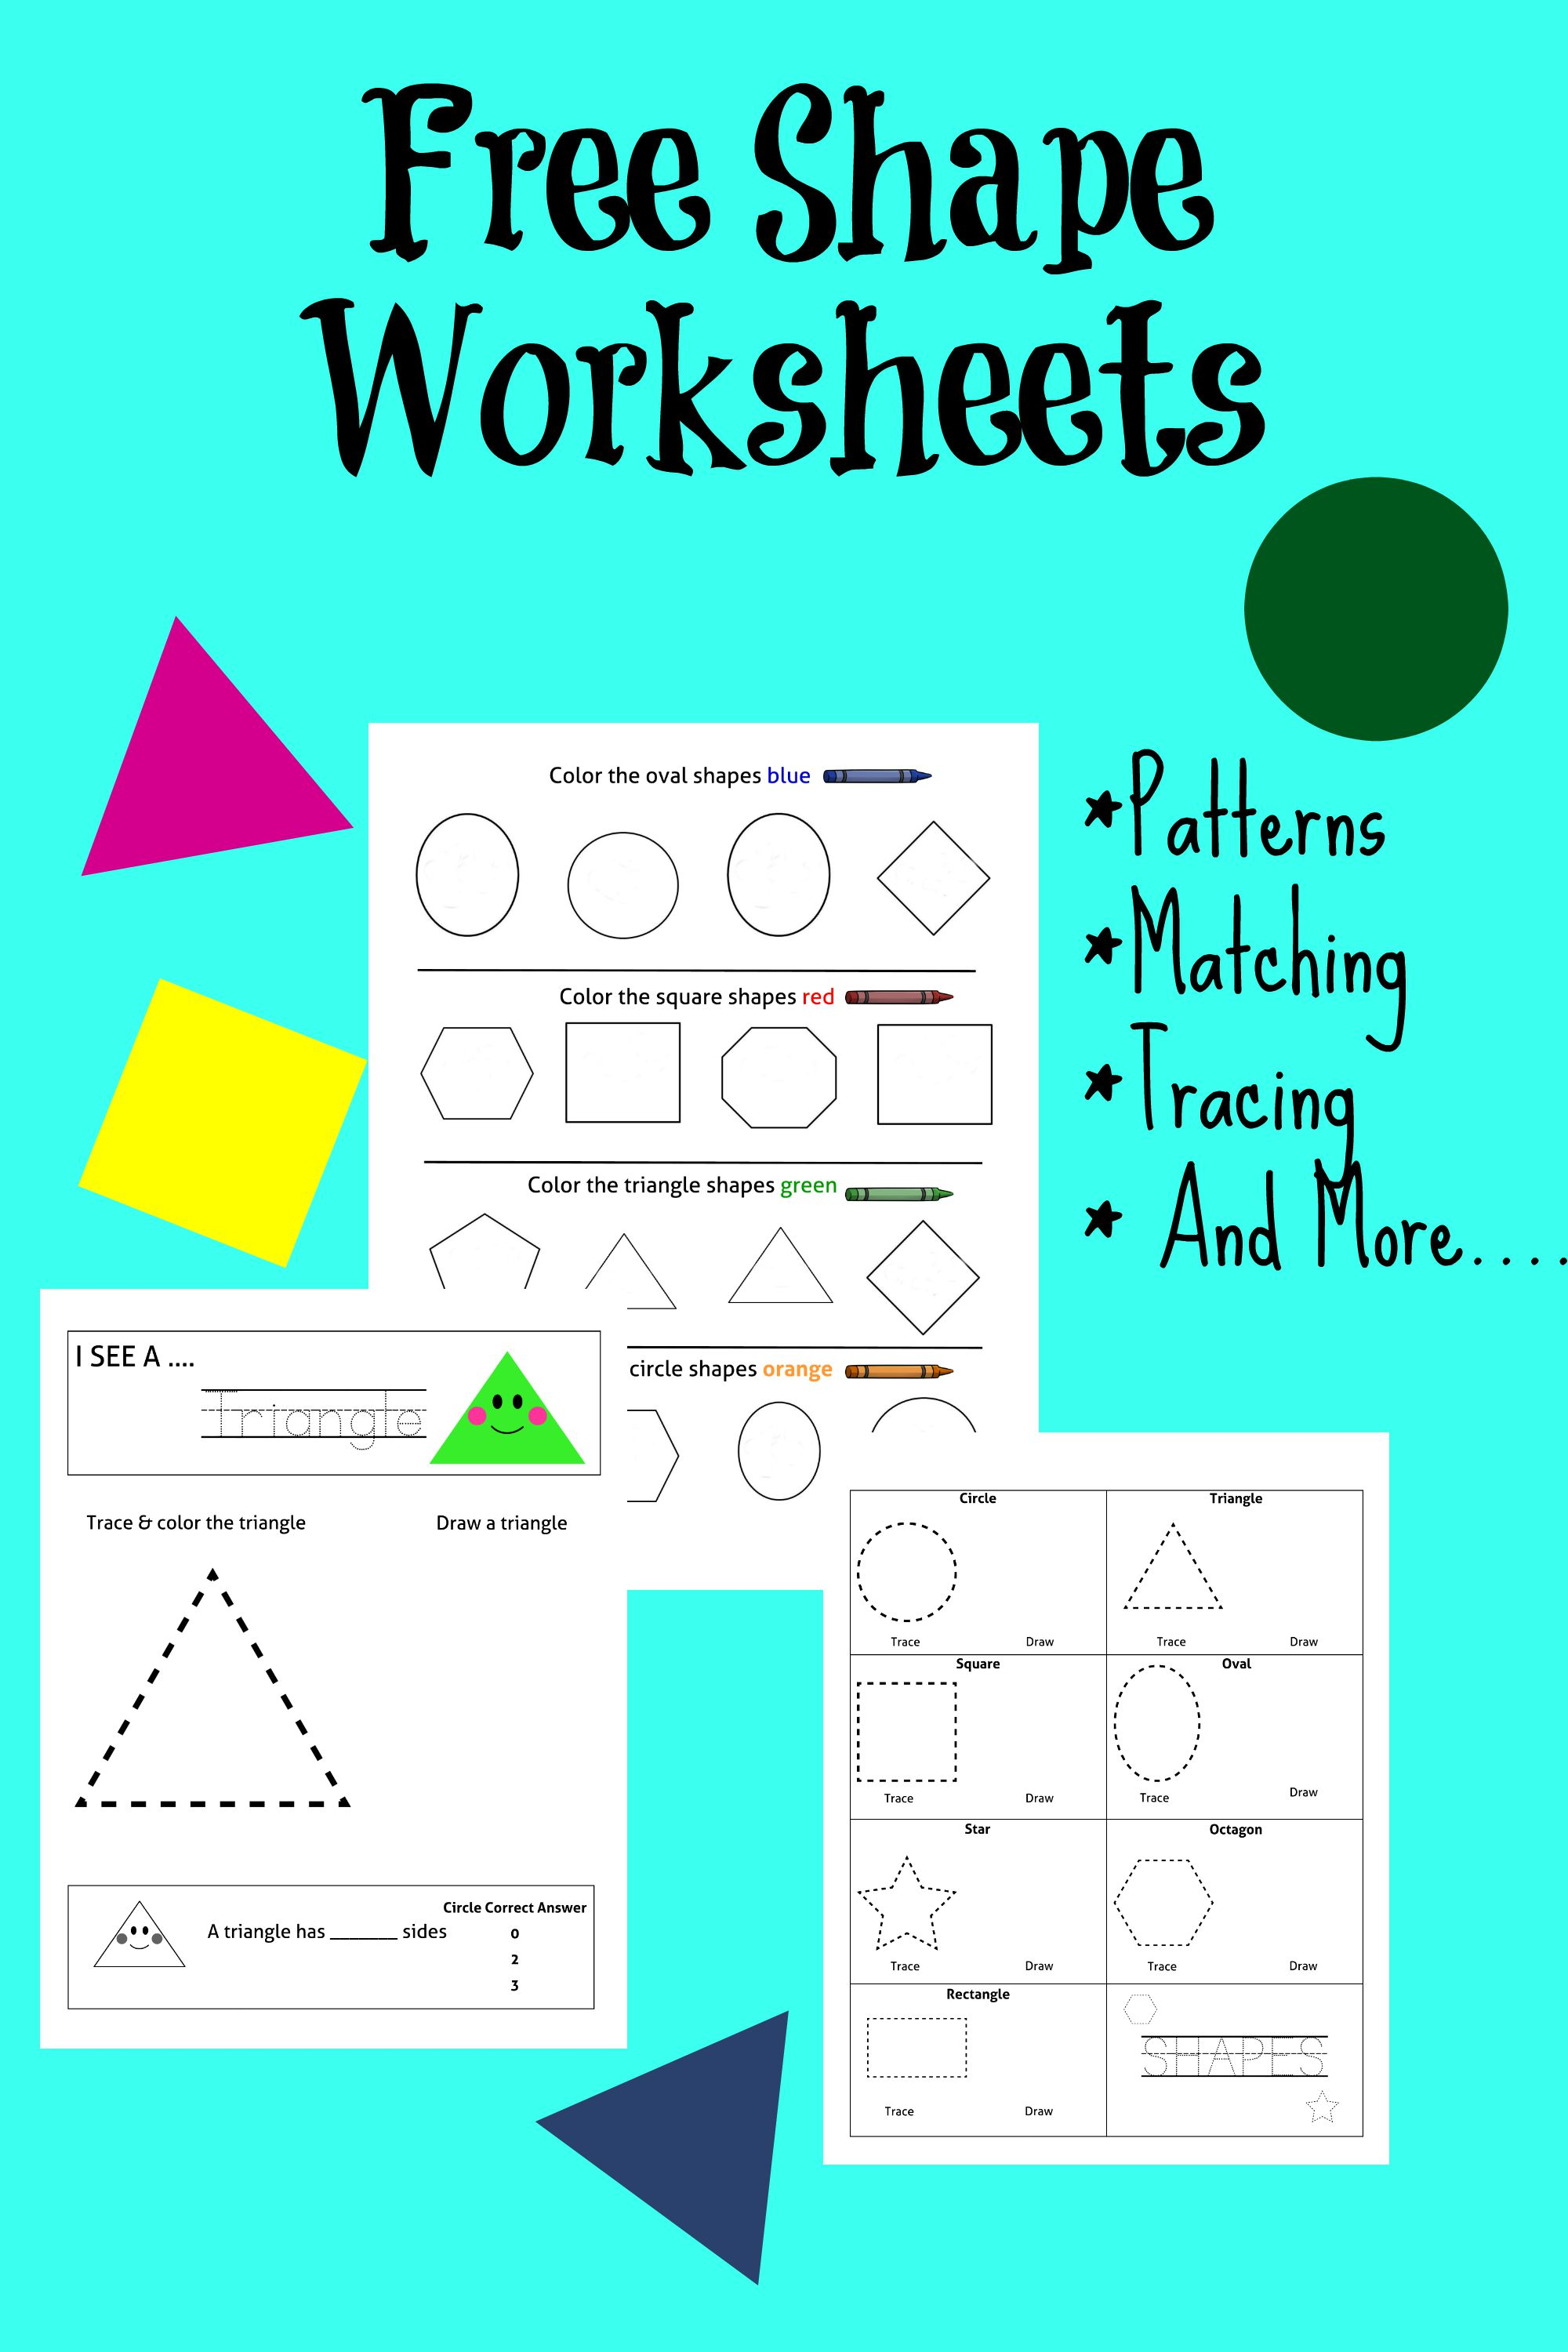 FREE Printable: Fun With Shapes